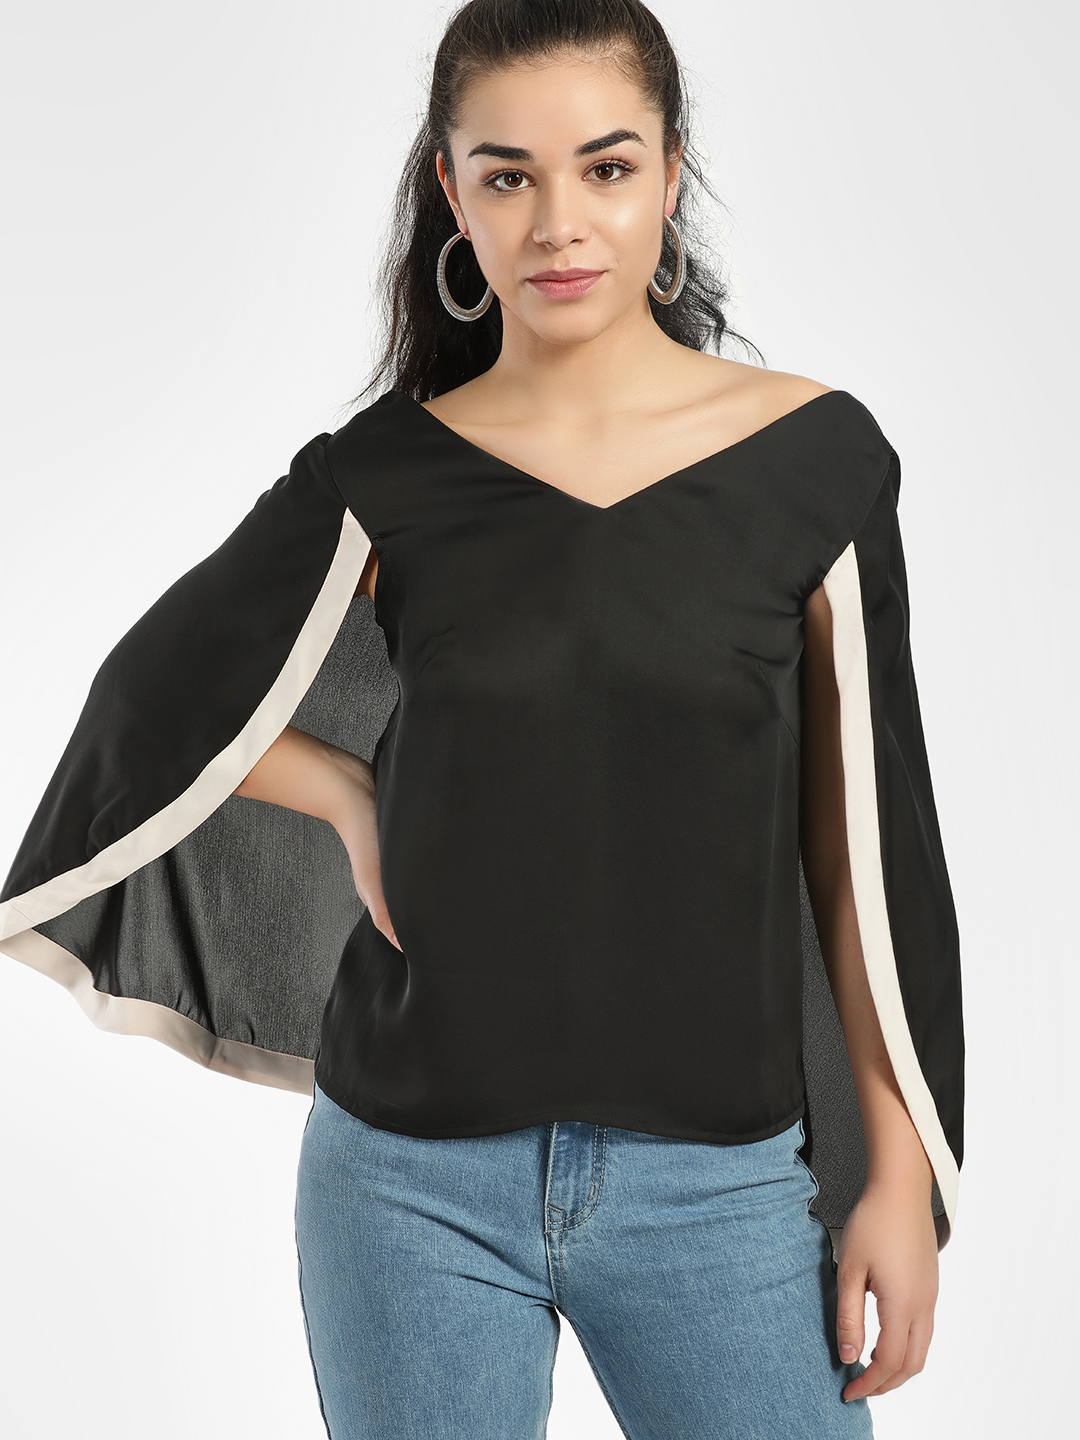 Oliv Black Contrast Border Cape Top 1